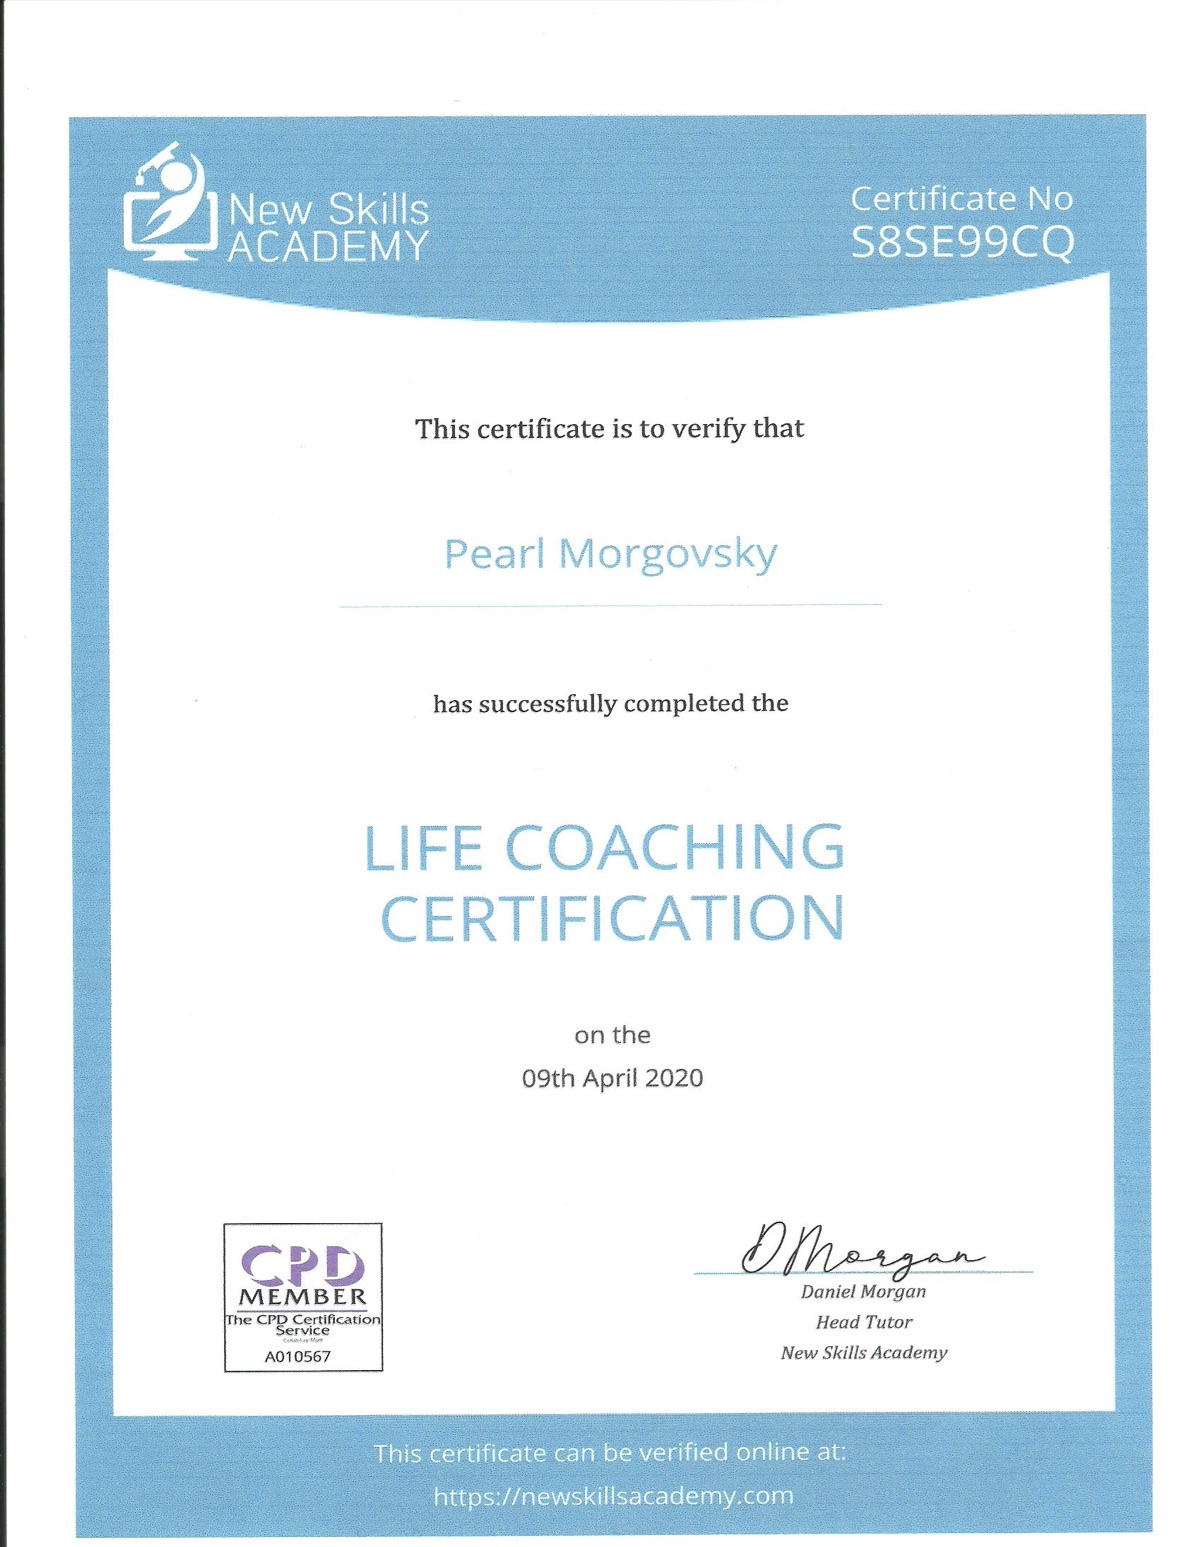 CoC New Skills Academy : Life Coaching Certifications